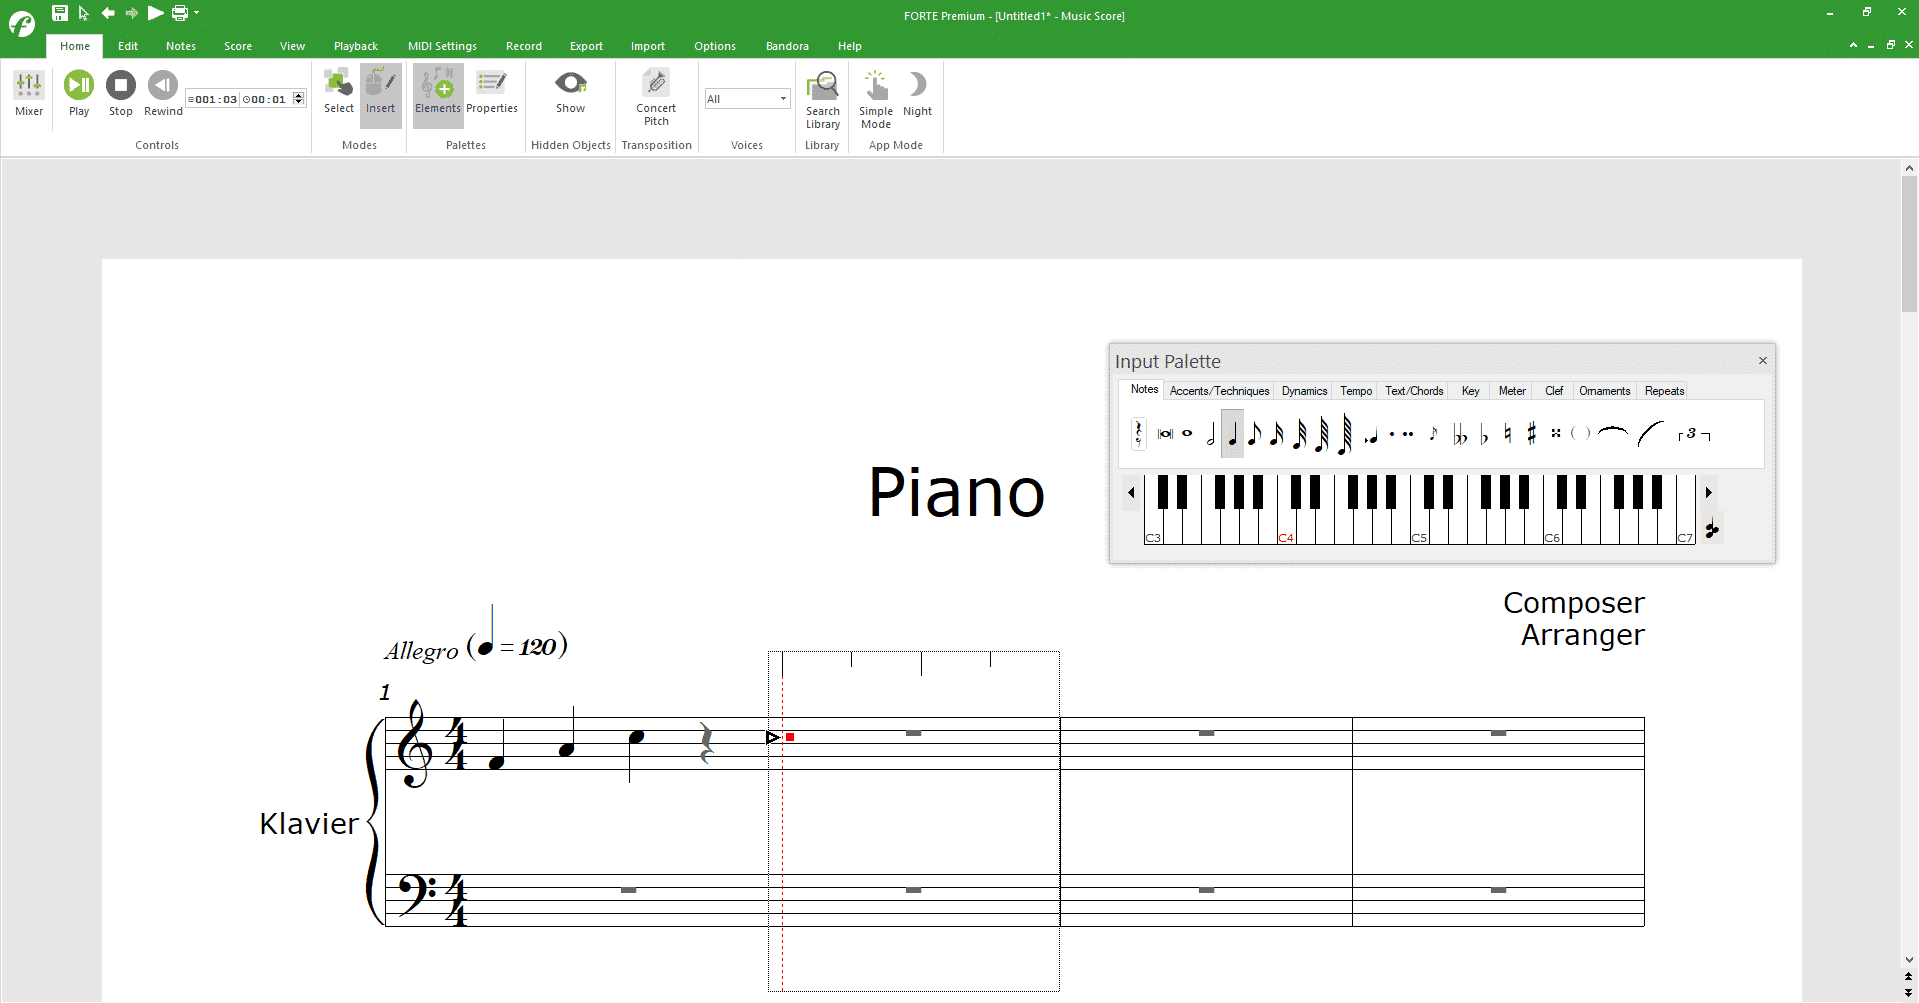 Inputting notes into a score with FORTE and its music ruler when making sheet music